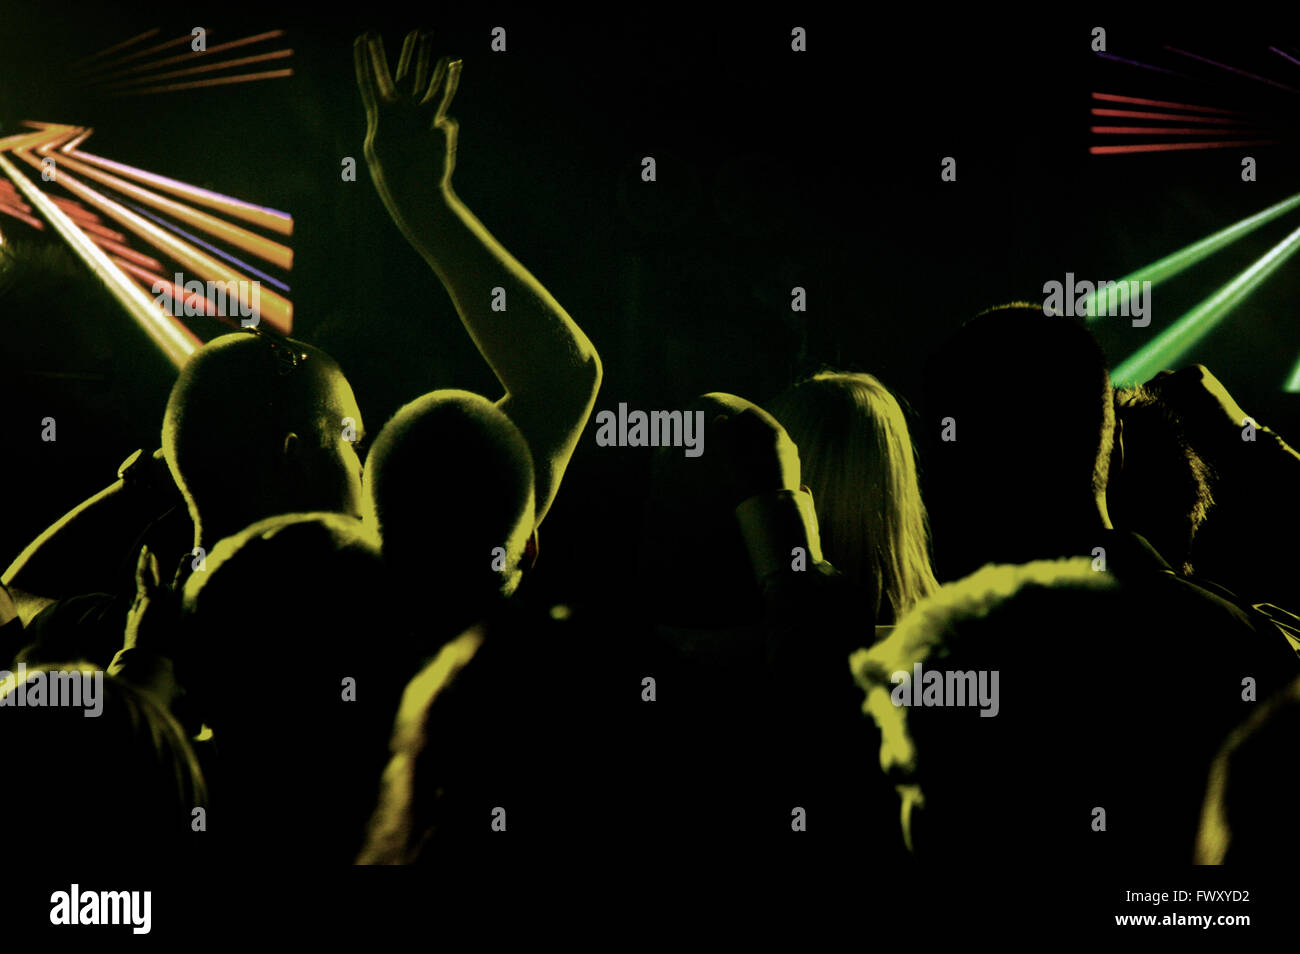 Finland, Pirkanmaa, Tampere, Silhouettes of people in night club Stock Photo